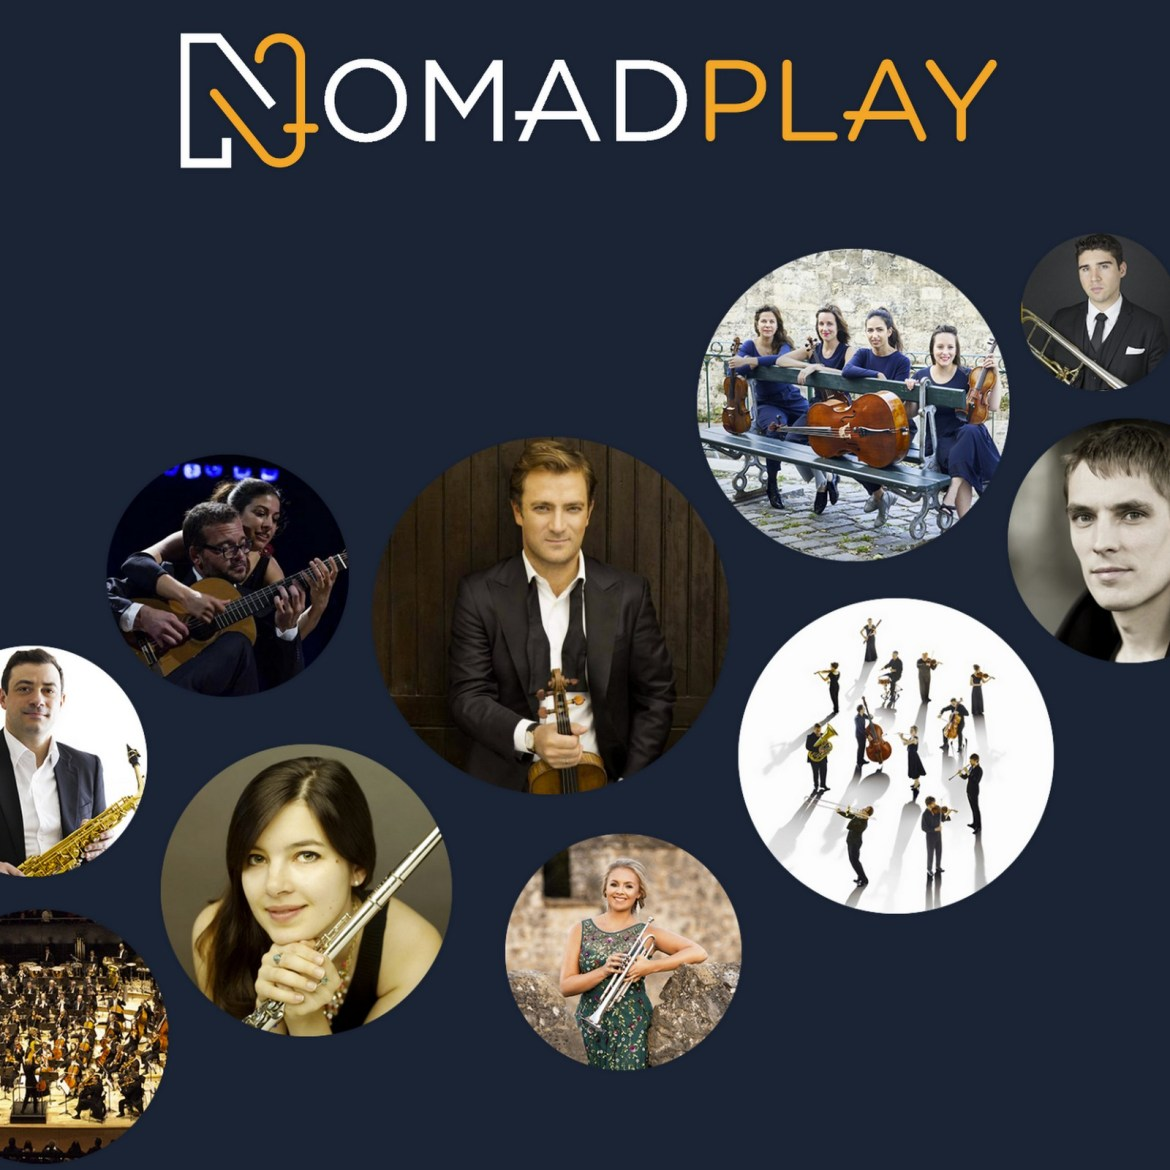 NomadPlay app review Karaoke for Classical Musicians by Music Photo Life, Singapore tech blog